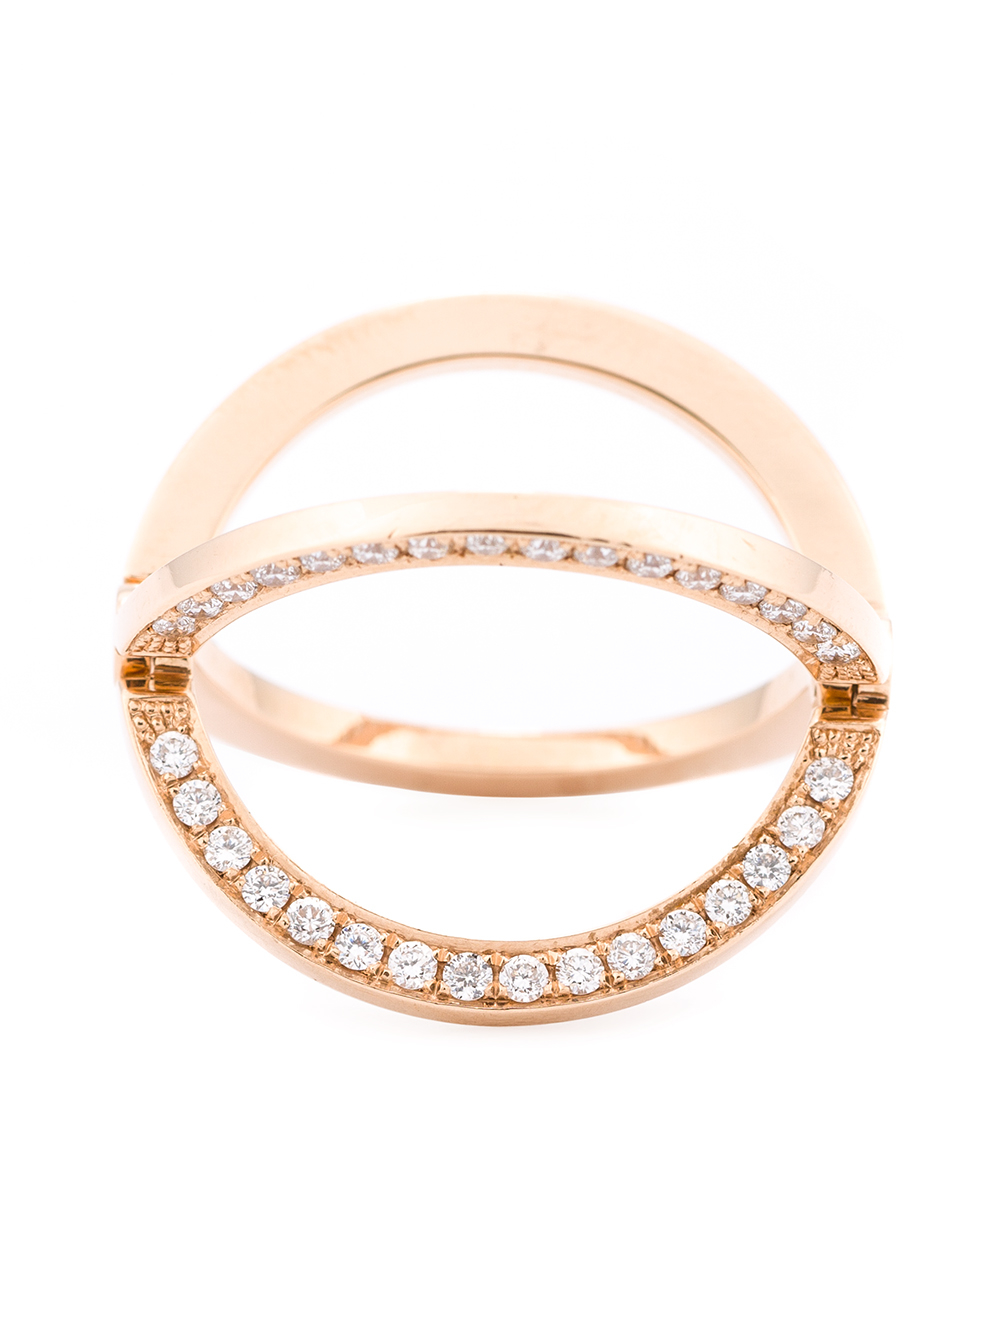 Kim Mee Hye Twisted Gold and Diamond Ring - Pink & Purple dYHwJDyaQm